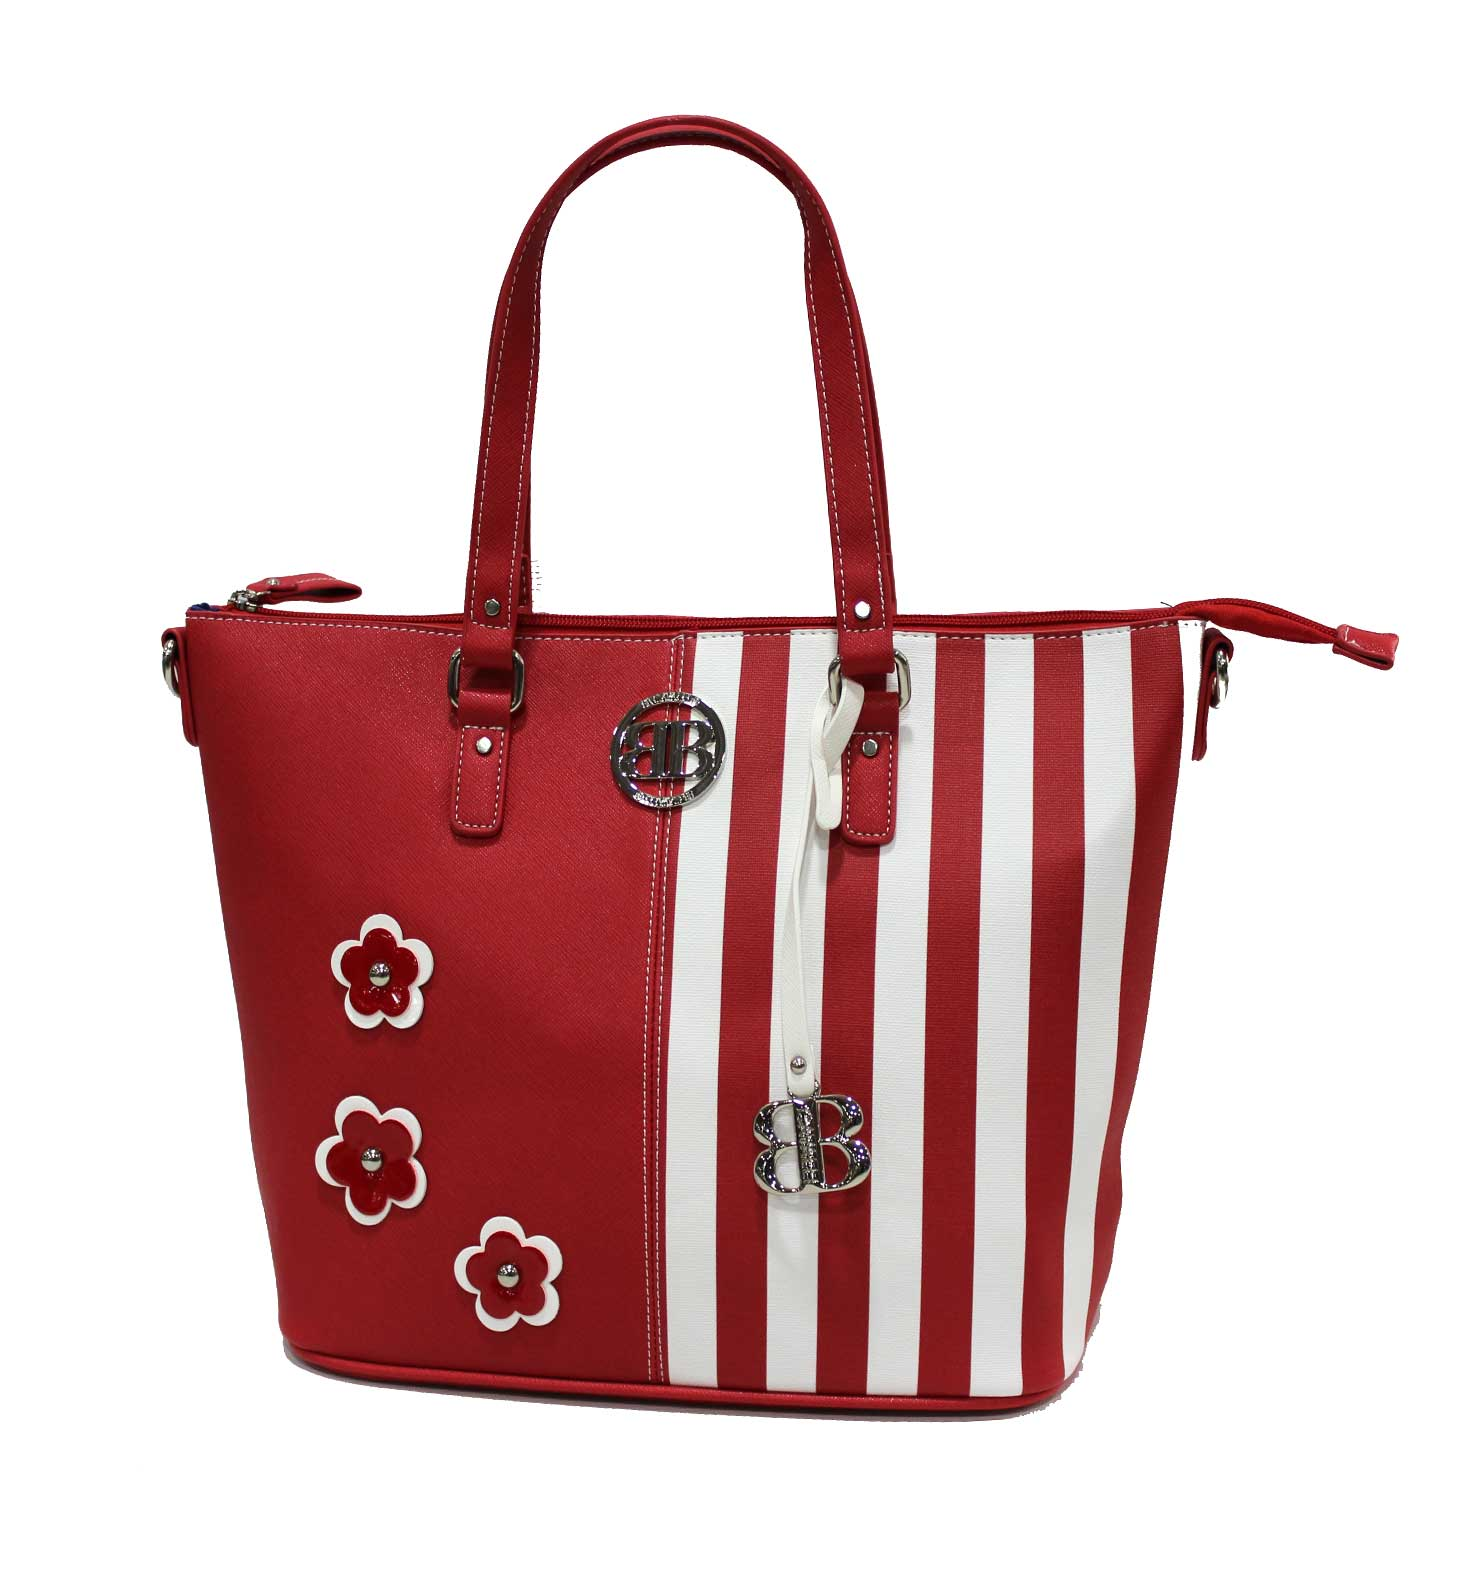 finest selection 746bb 2a289 Women's handbag imitation leather 2 handles B.Cavalli Smeralda line 041 red